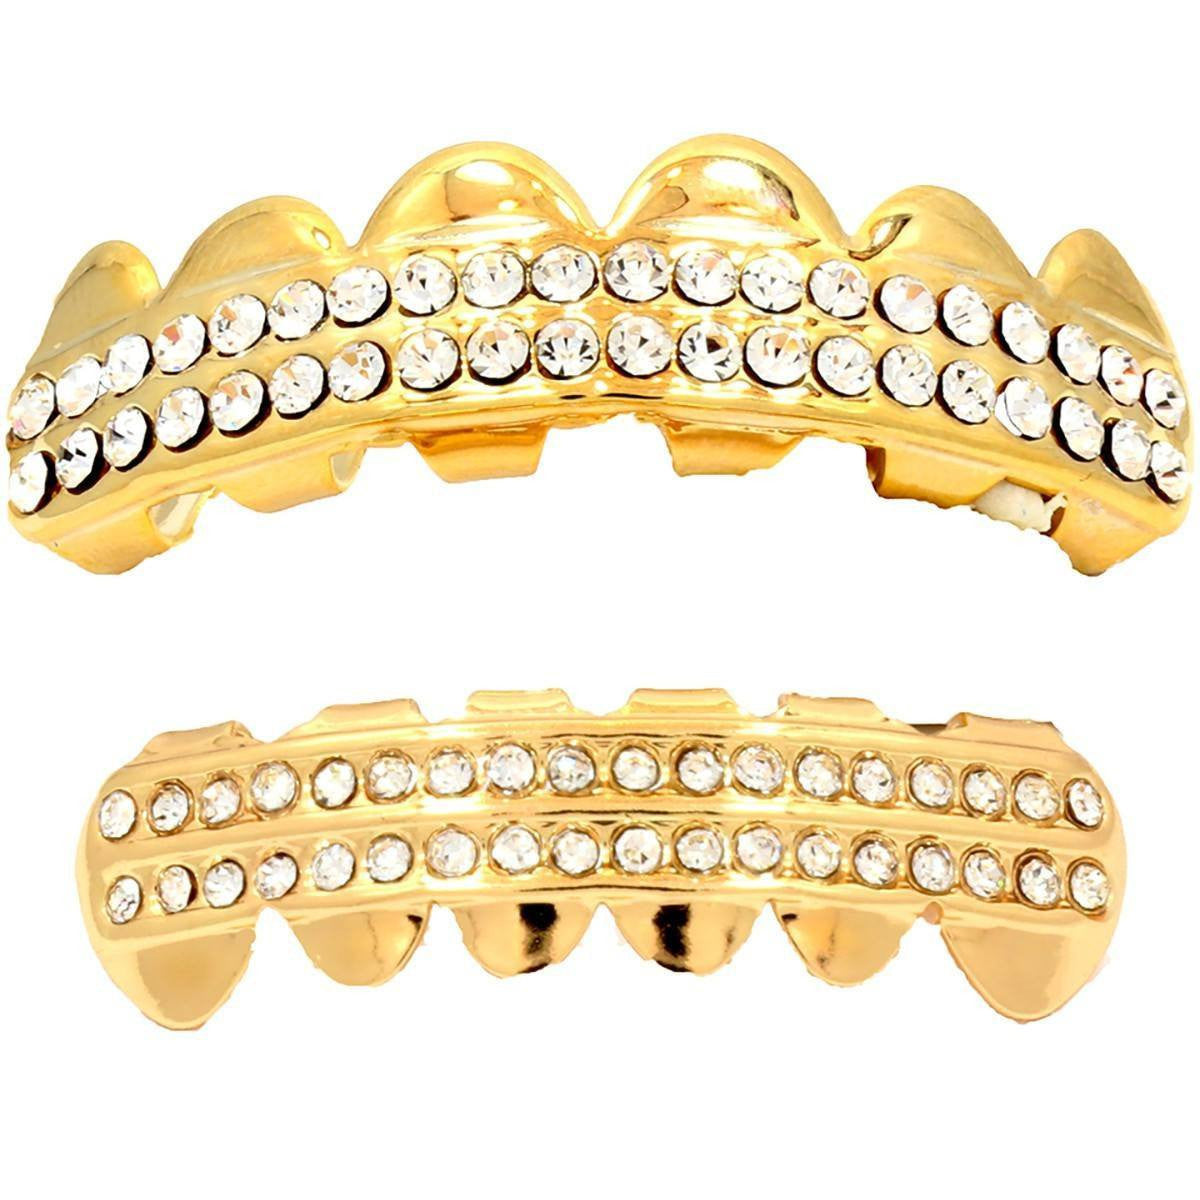 GOLD PLATED 2 ROW CLEAR BEST GRILLZ SET